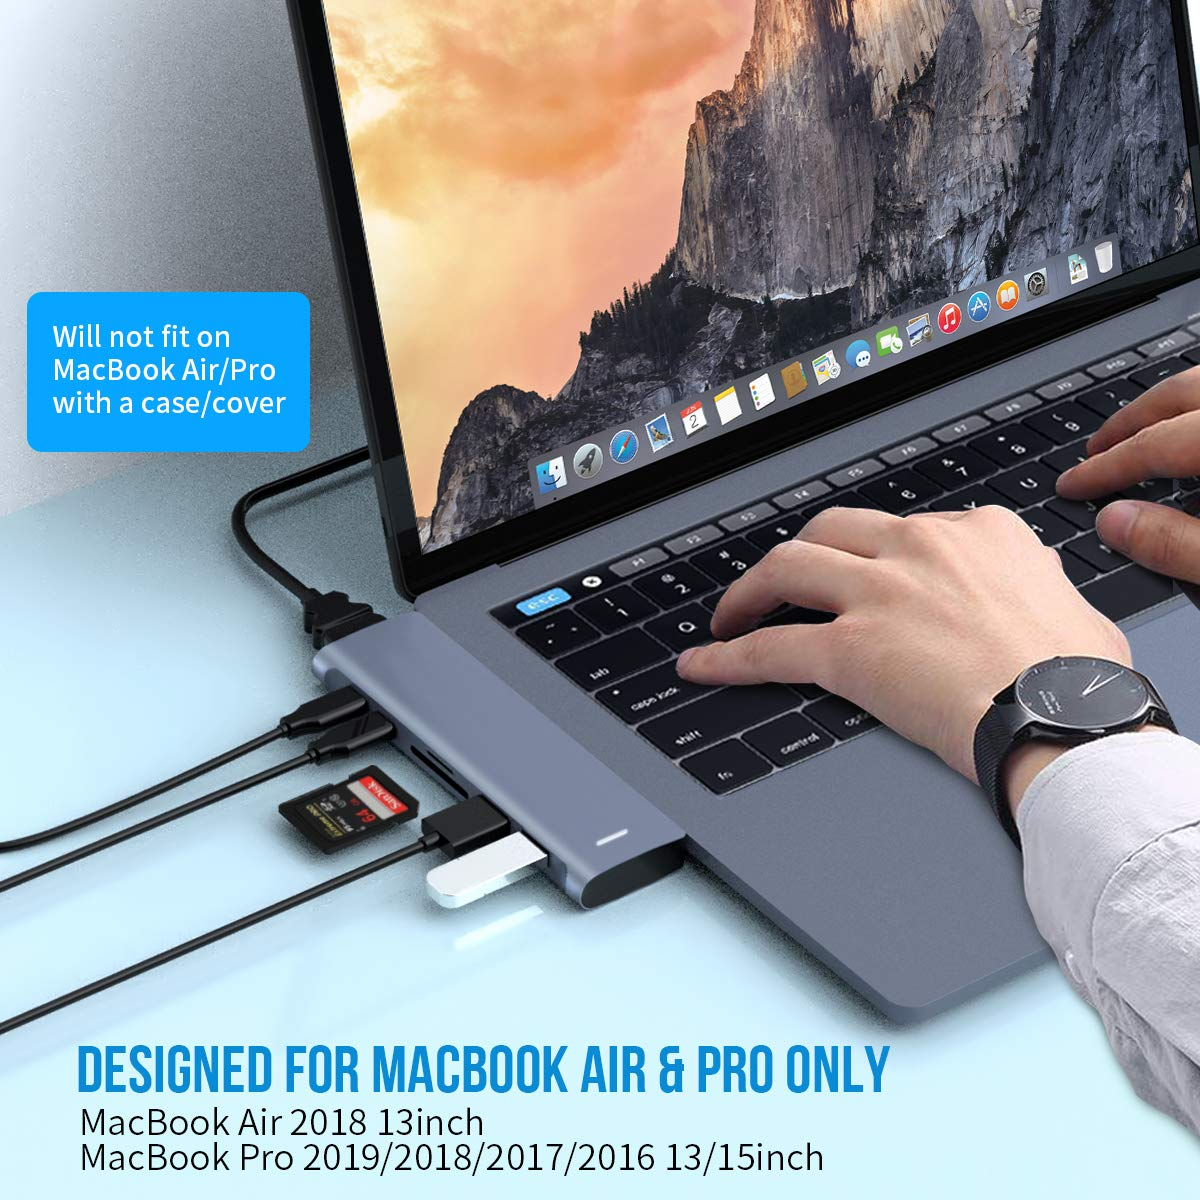 2 USB3.0 and TF//SD Card Reader for MacBook Pro 2019//2018//2017,MacBook Air 2018 USB C Hub for MacBook Pro,7-in-2 USB C to HDMI 4K Adapter with 1 Thunderbolt3,1 USB-C PD Port